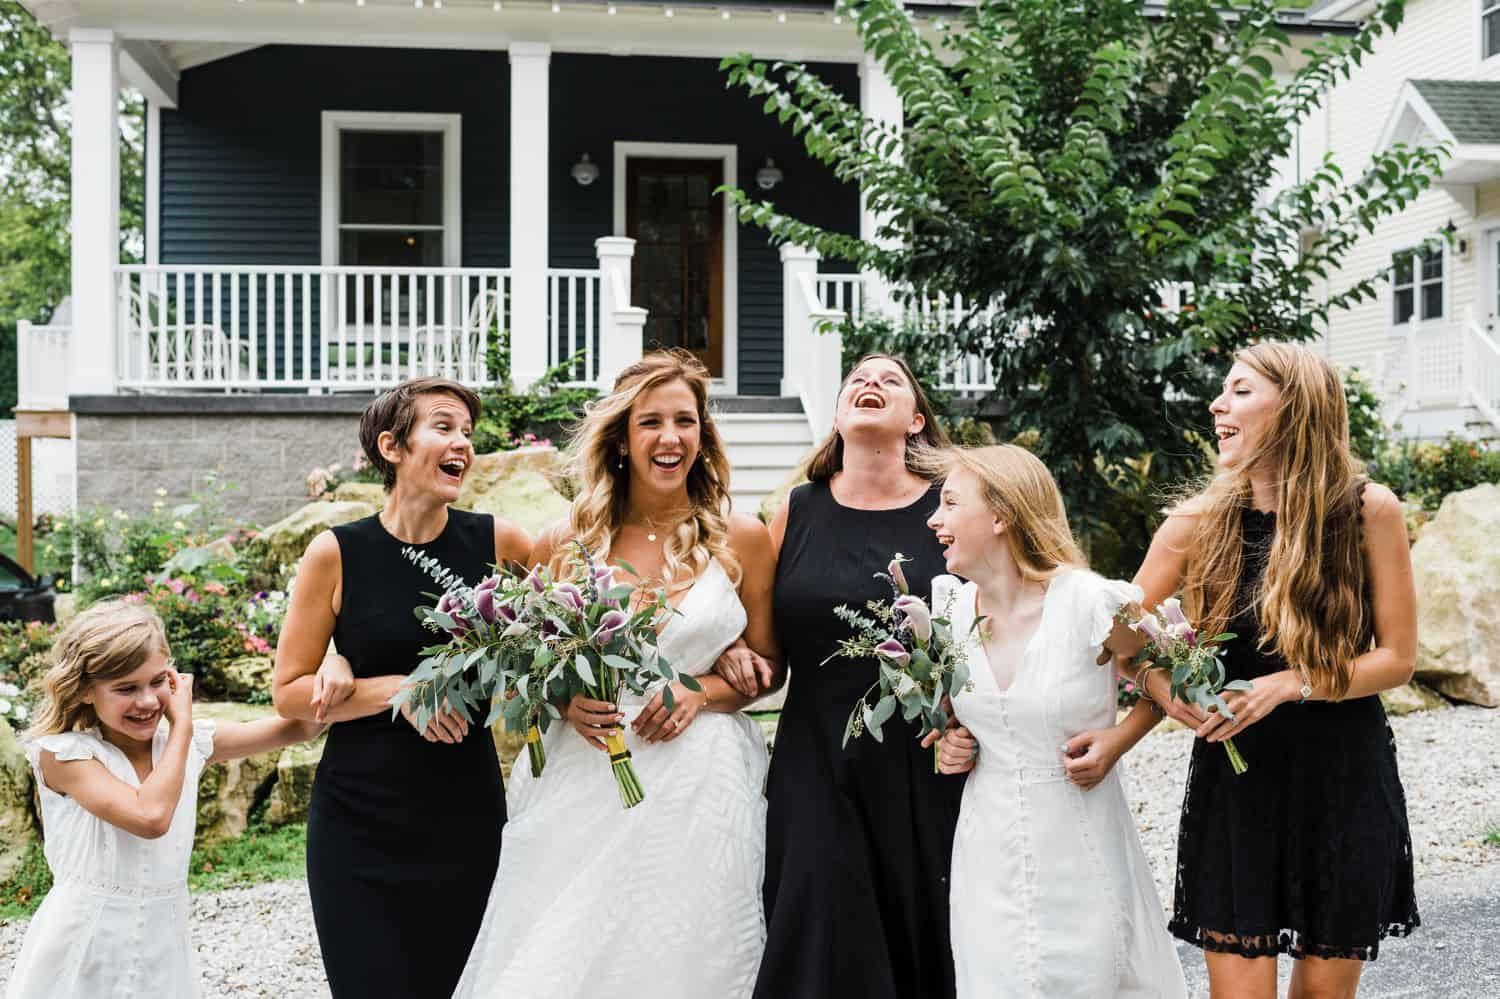 A bride and her bridesmaids walk arm in arm in front of an old farmhouse.